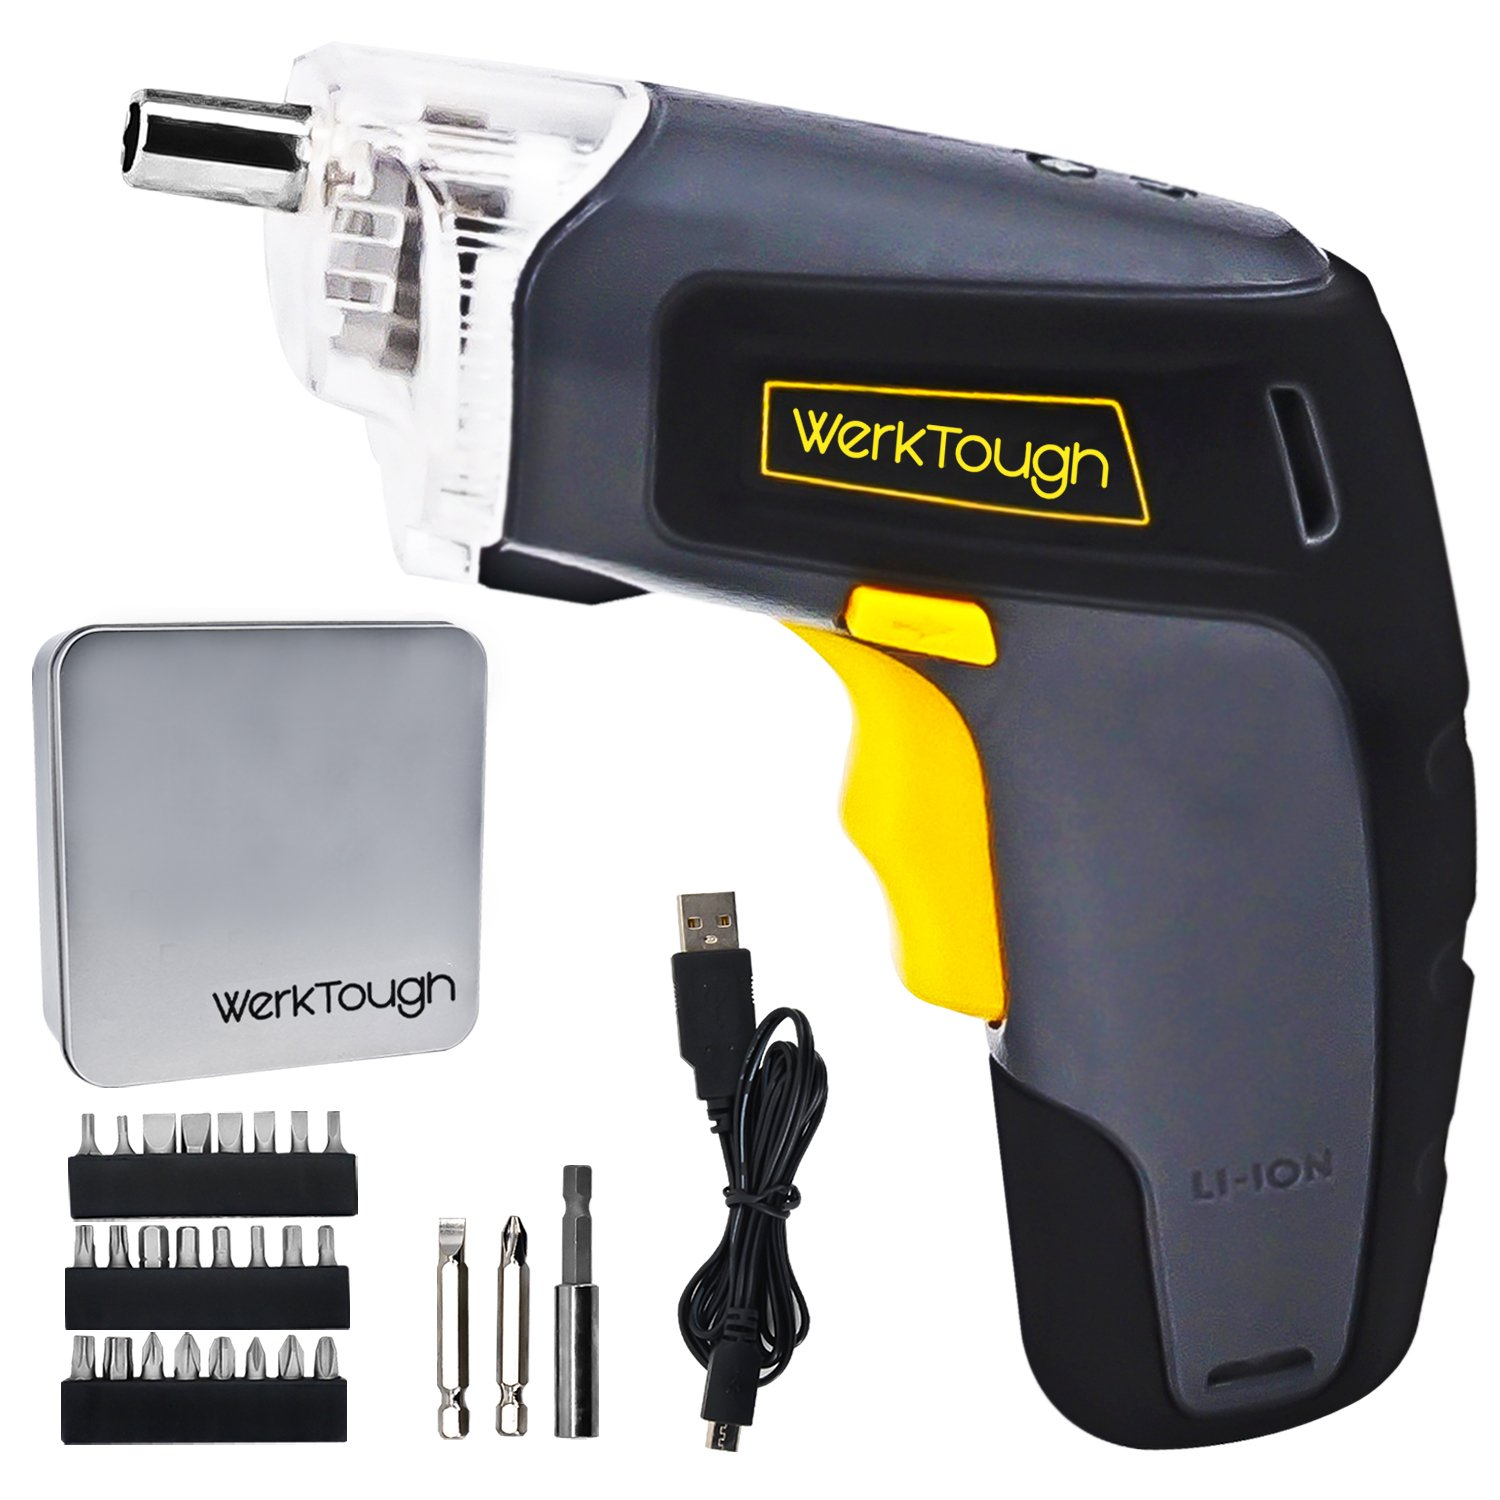 Werktough 3.6V Li-ion Battery Cordless Screwdriver S008